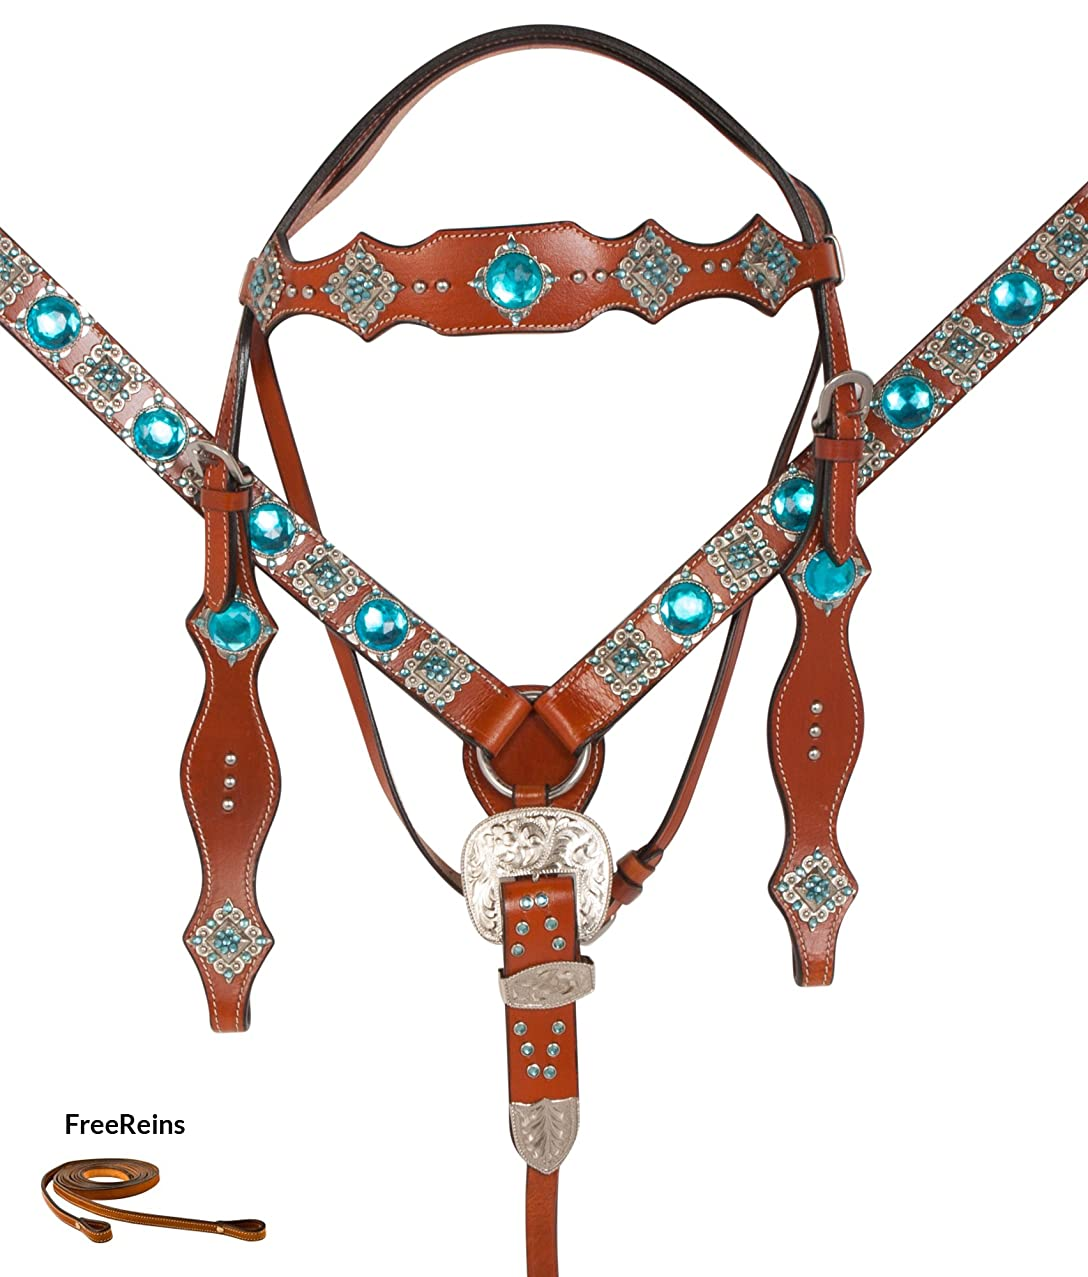 AceRugs Turquoise Blue Western Show Parade Silver Breast Collar REINS Headstall Crystal Bling Barrel Racer Leather Horse TACK Package